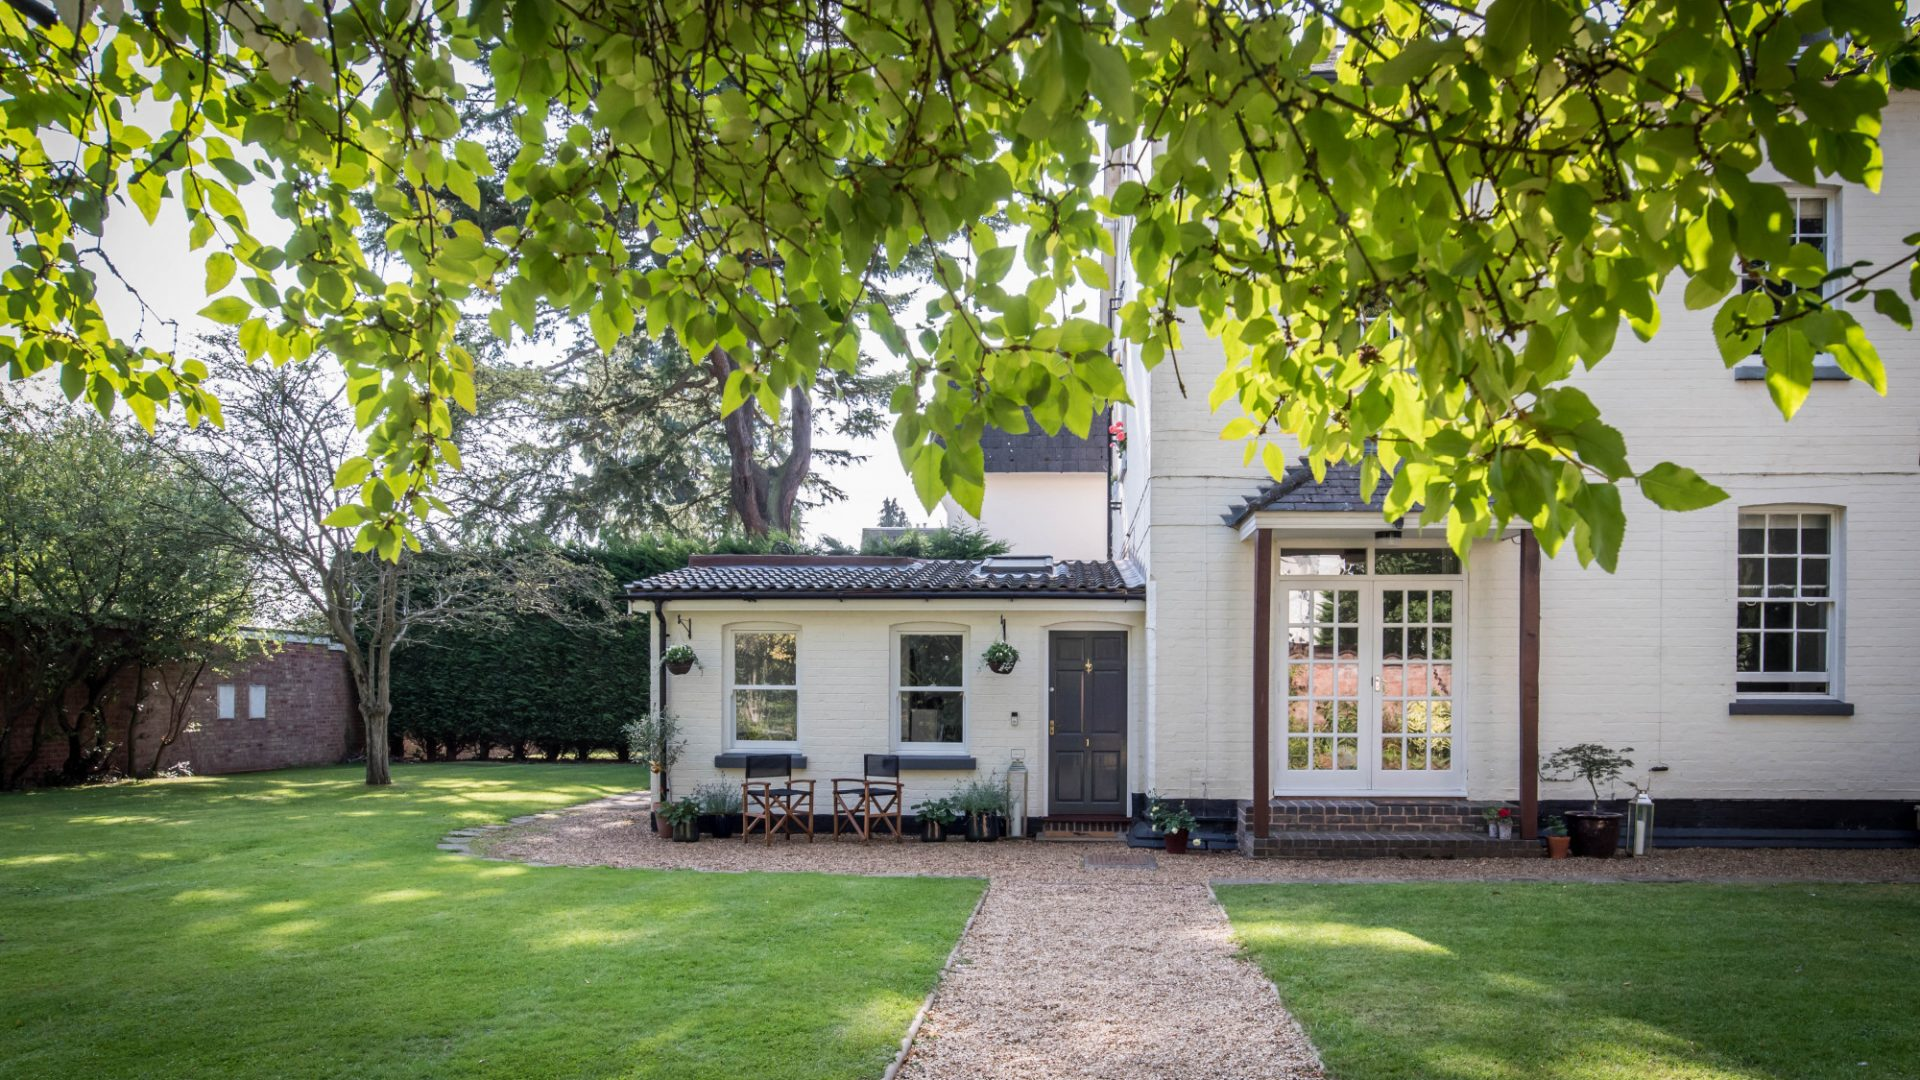 Kenilworth Road, Leamington Spa for sale with Mr and Mrs Clarke estate agent